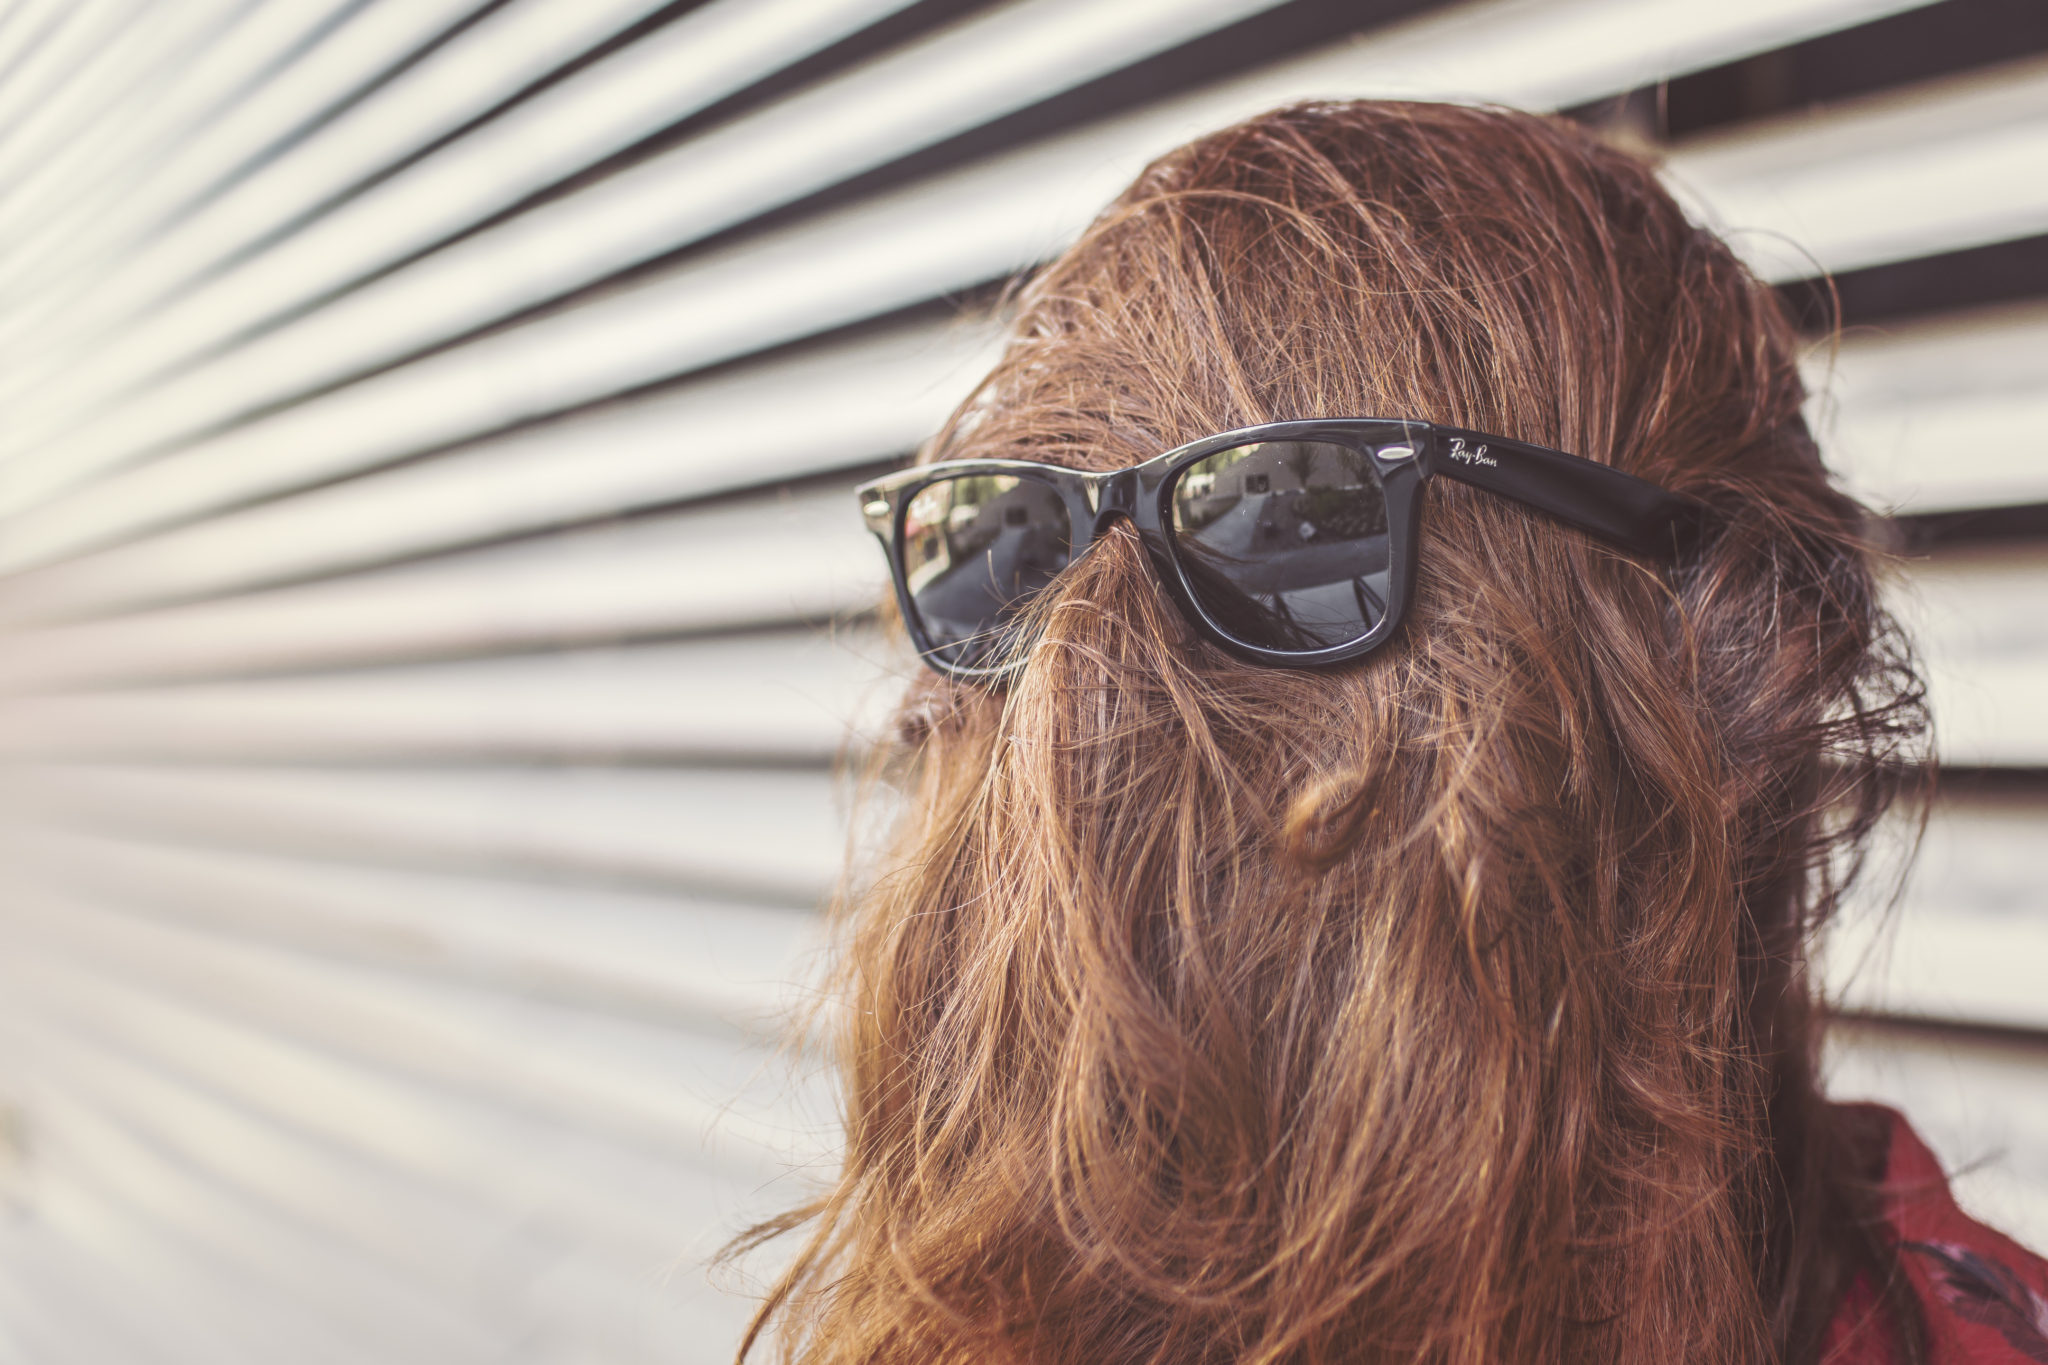 Long hair with sunglasses by Ryan McGuire from stocksnap.io